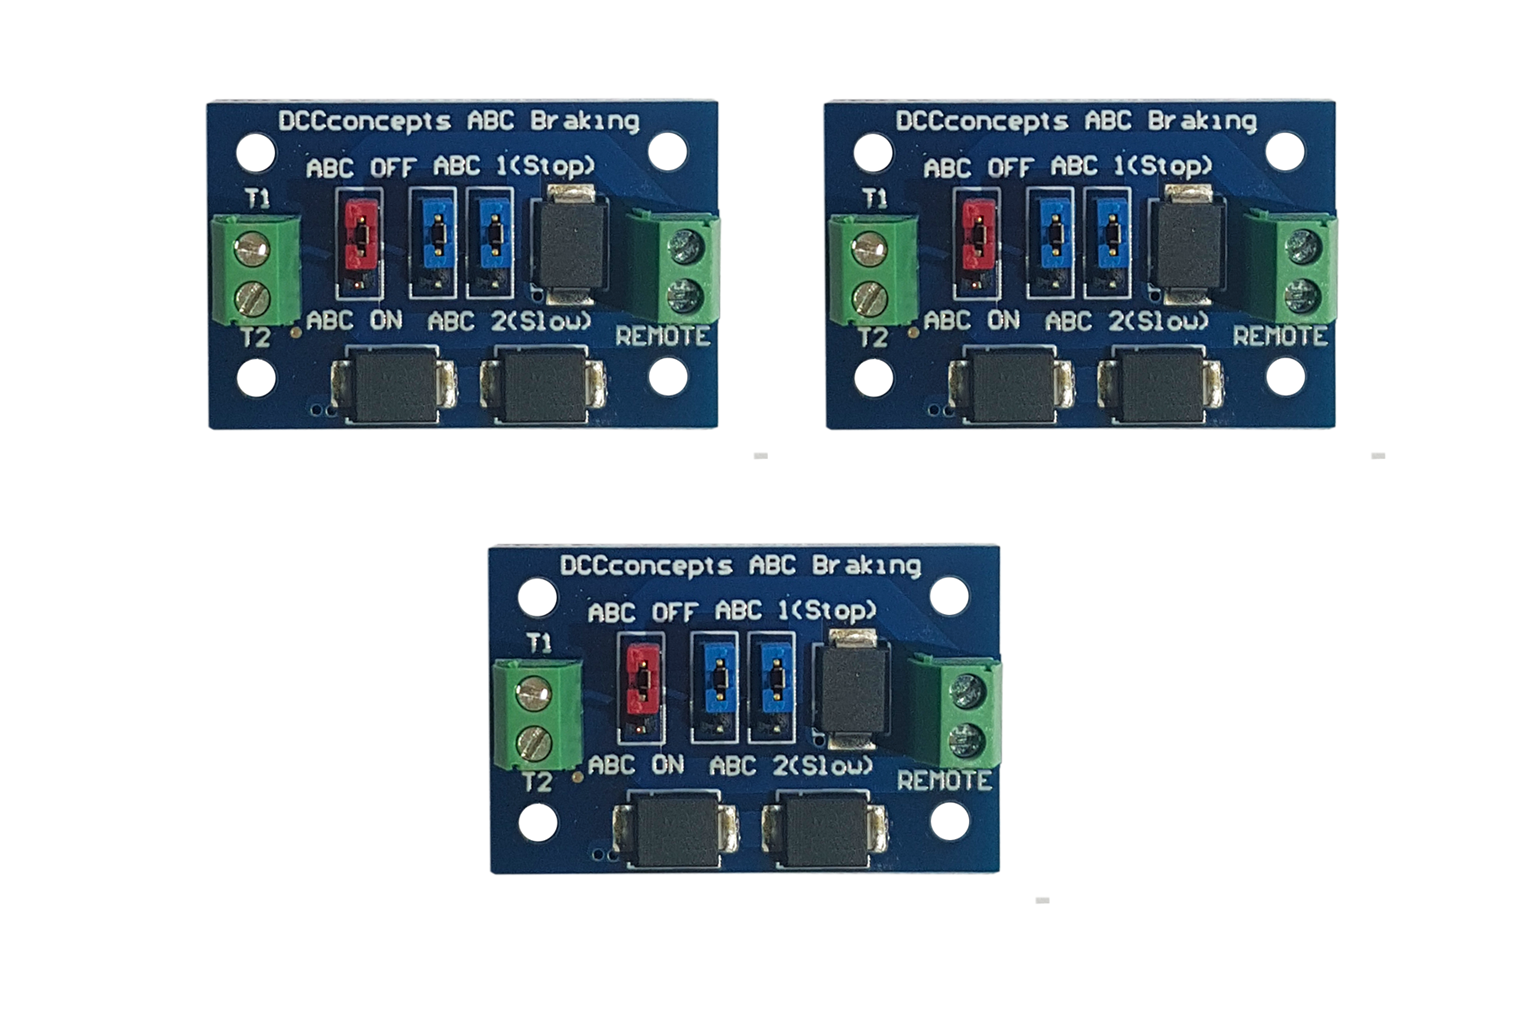 Pack of 3 ABC slow or stop modules